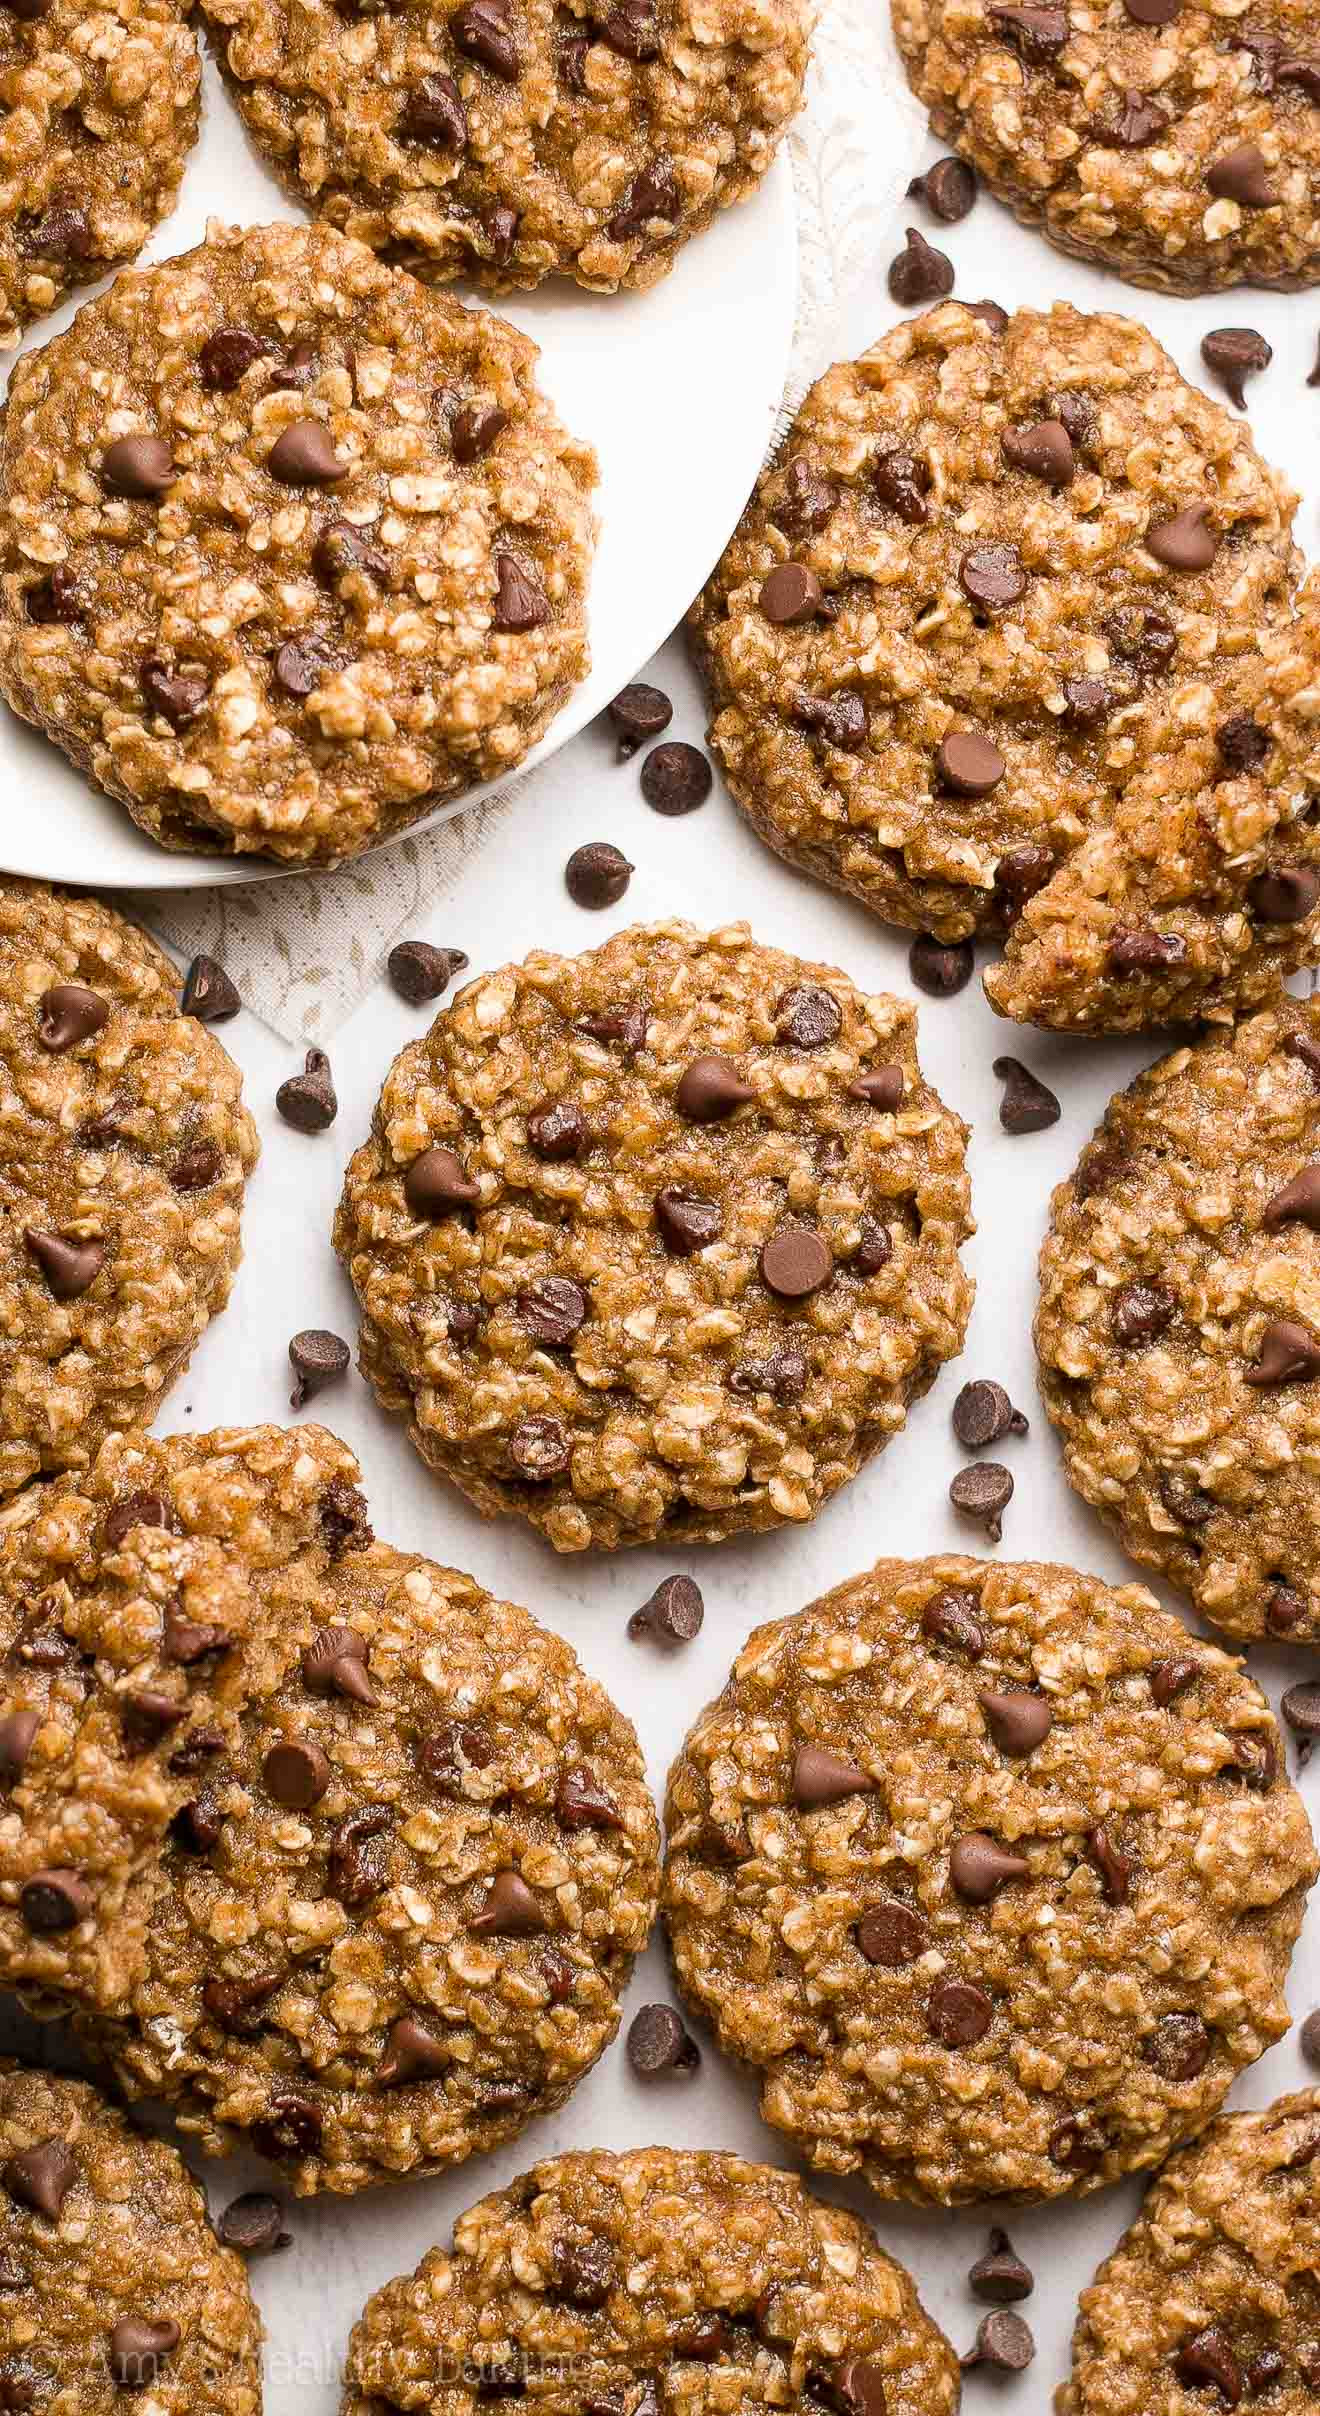 Healthy Chocolate Chip Oatmeal Cookies top 20 Chai Spice Chocolate Chip Oatmeal Cookies